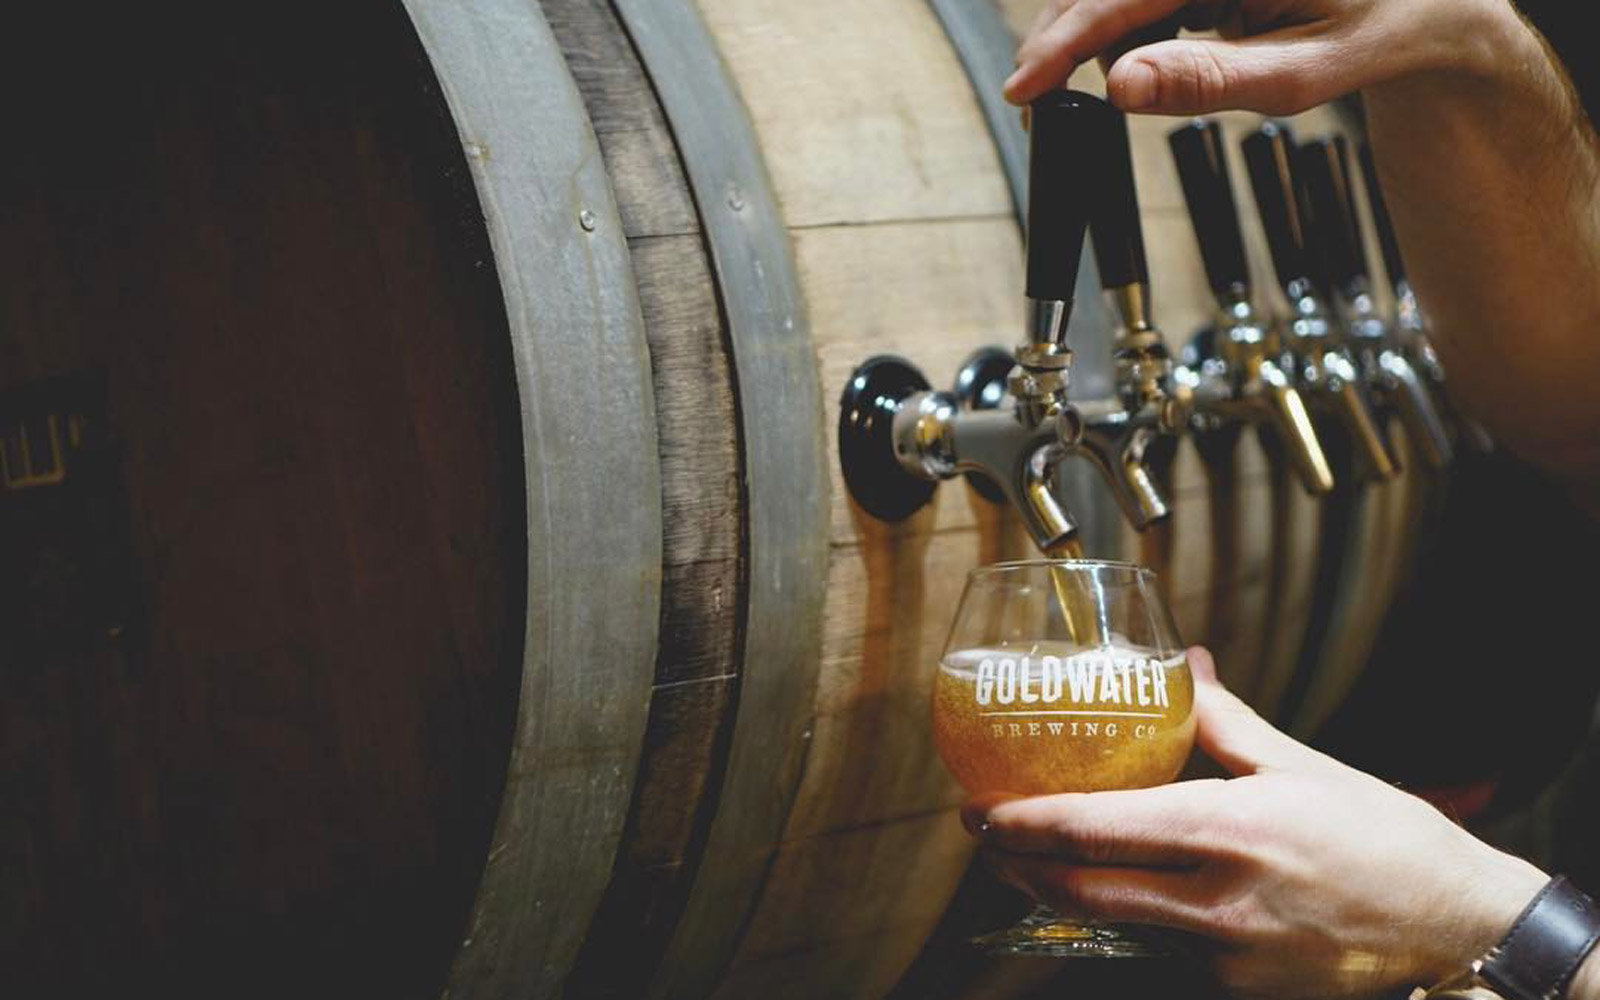 Best breweries in the U.S.